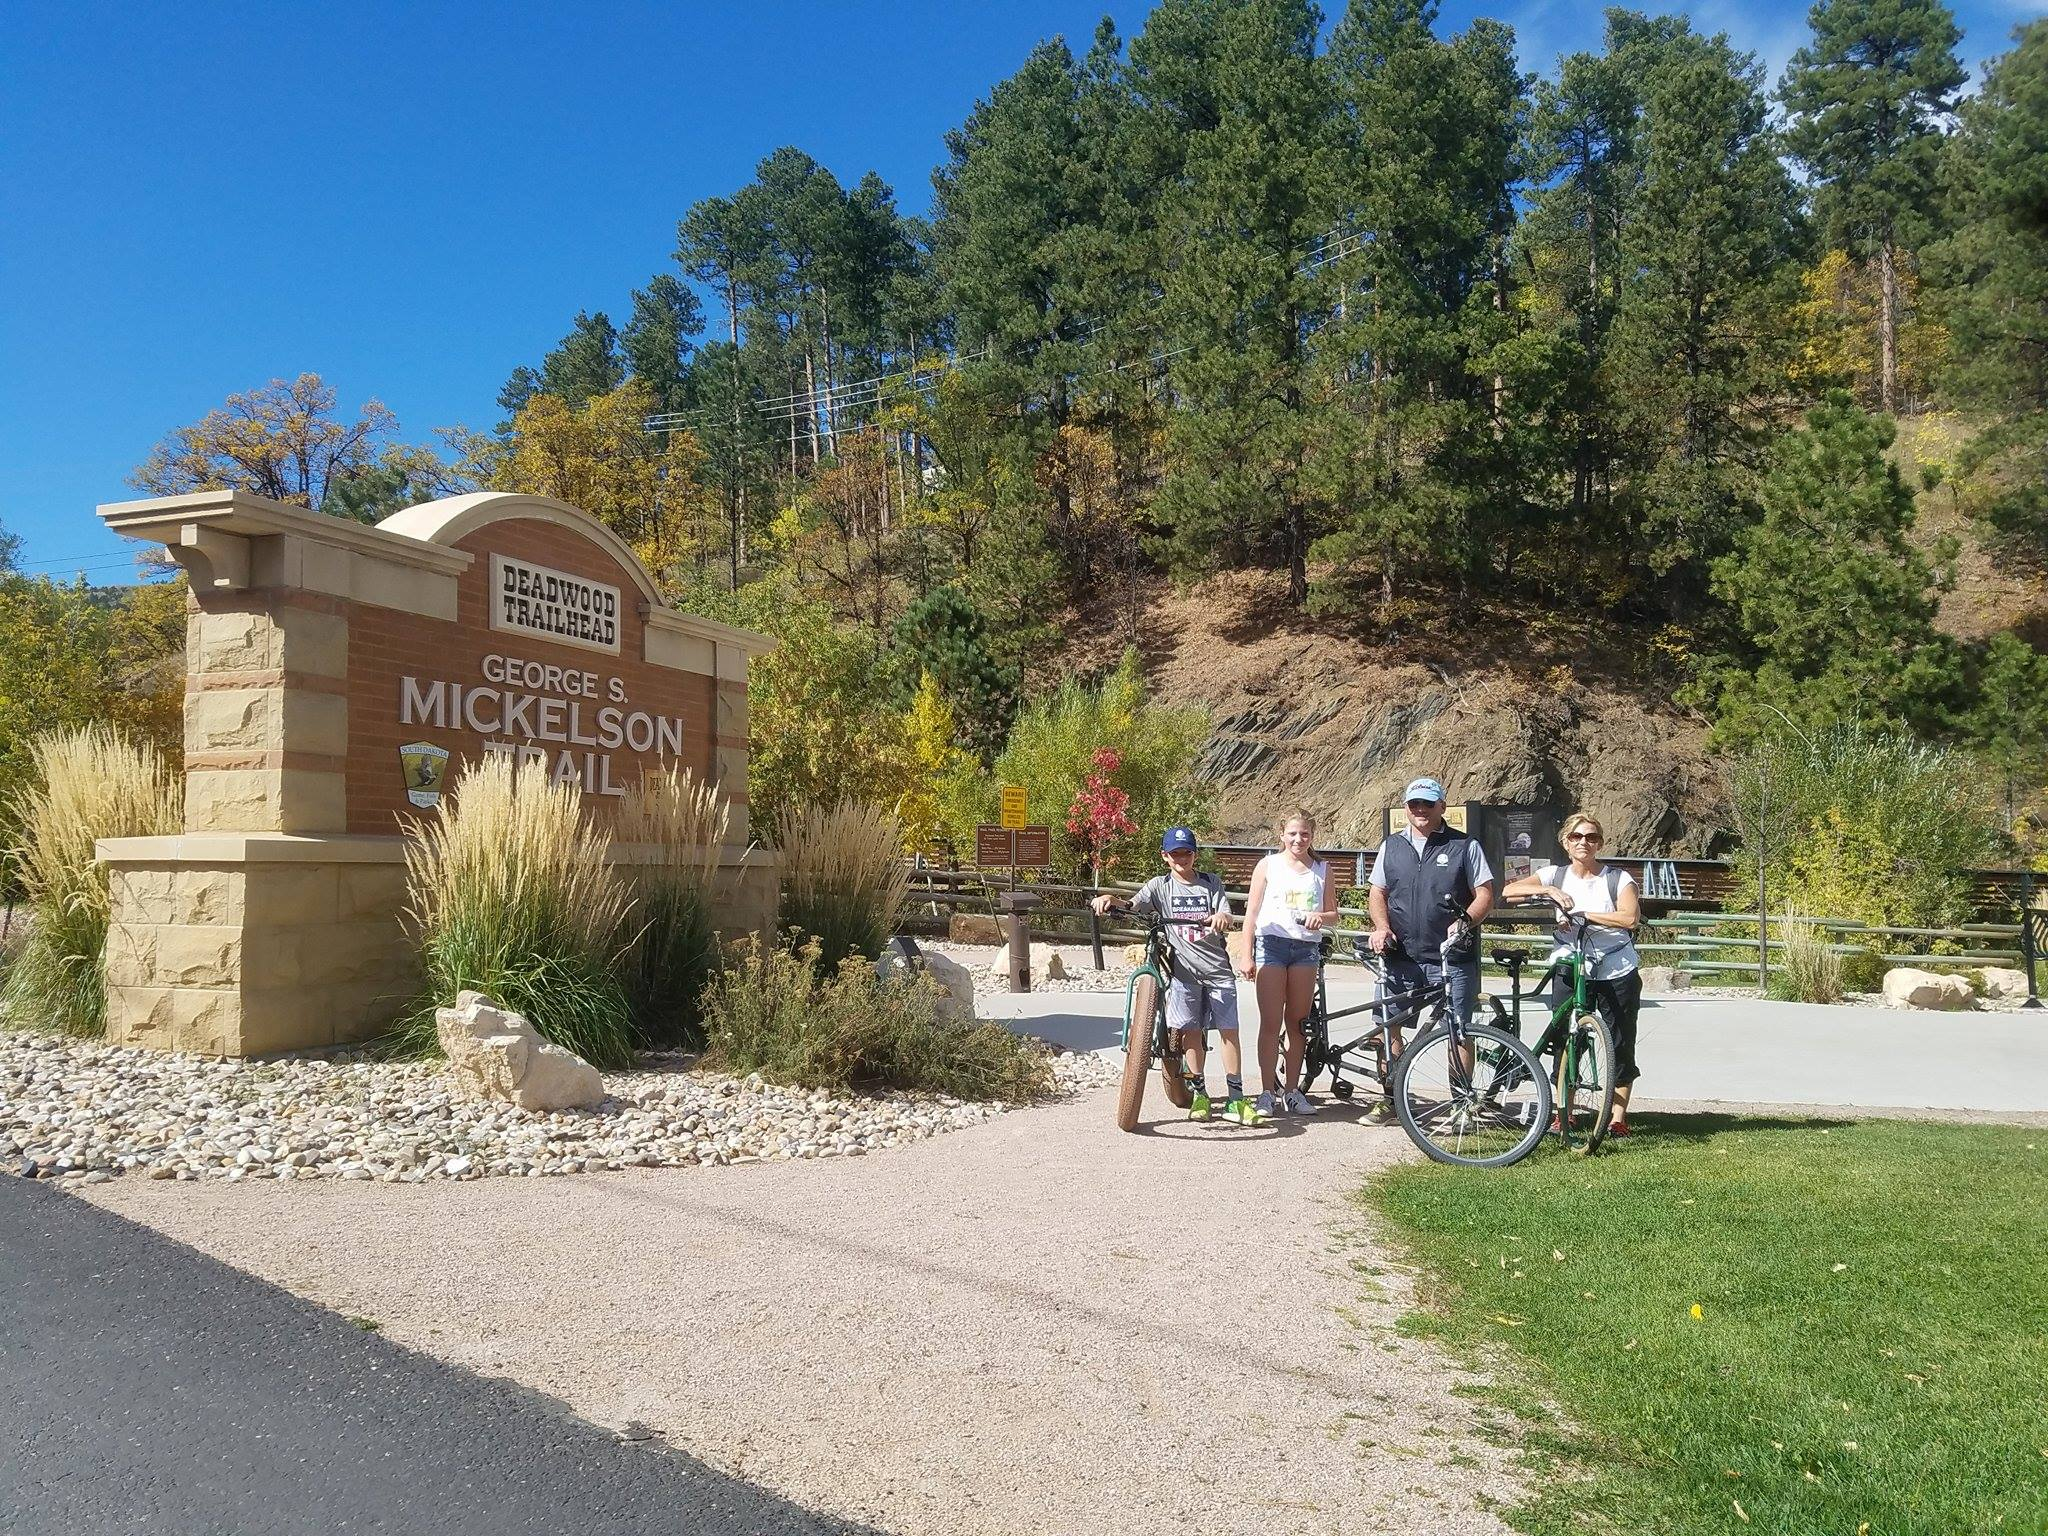 A group of bicyclists by the Mickelson Trail sign.